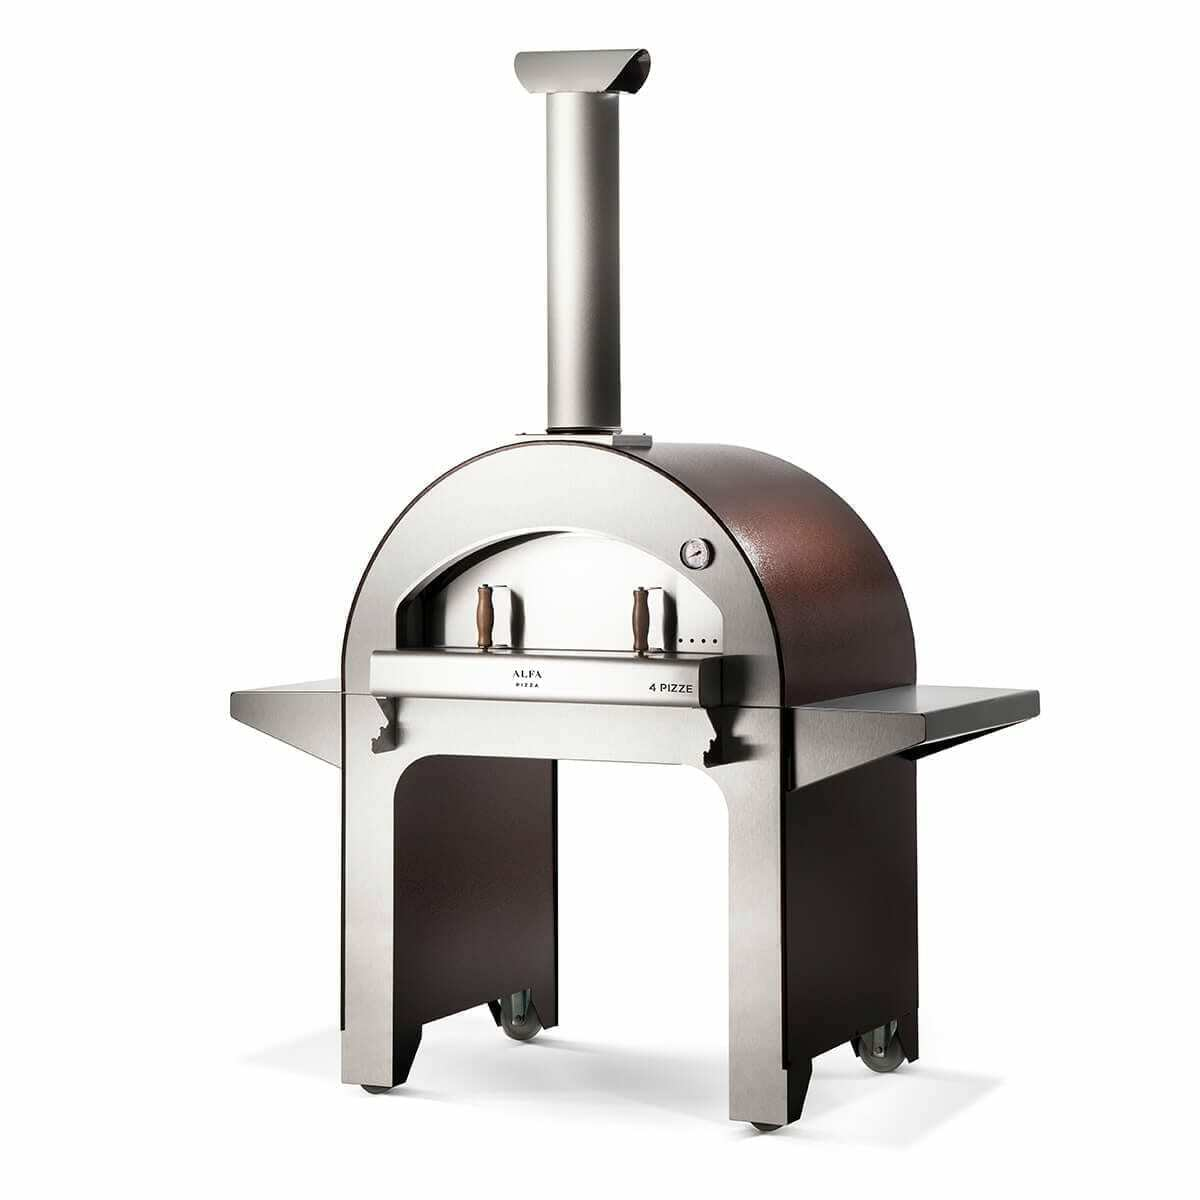 Chicago Outdoor Living's Alfa 4 Pizza Wood Fired Oven